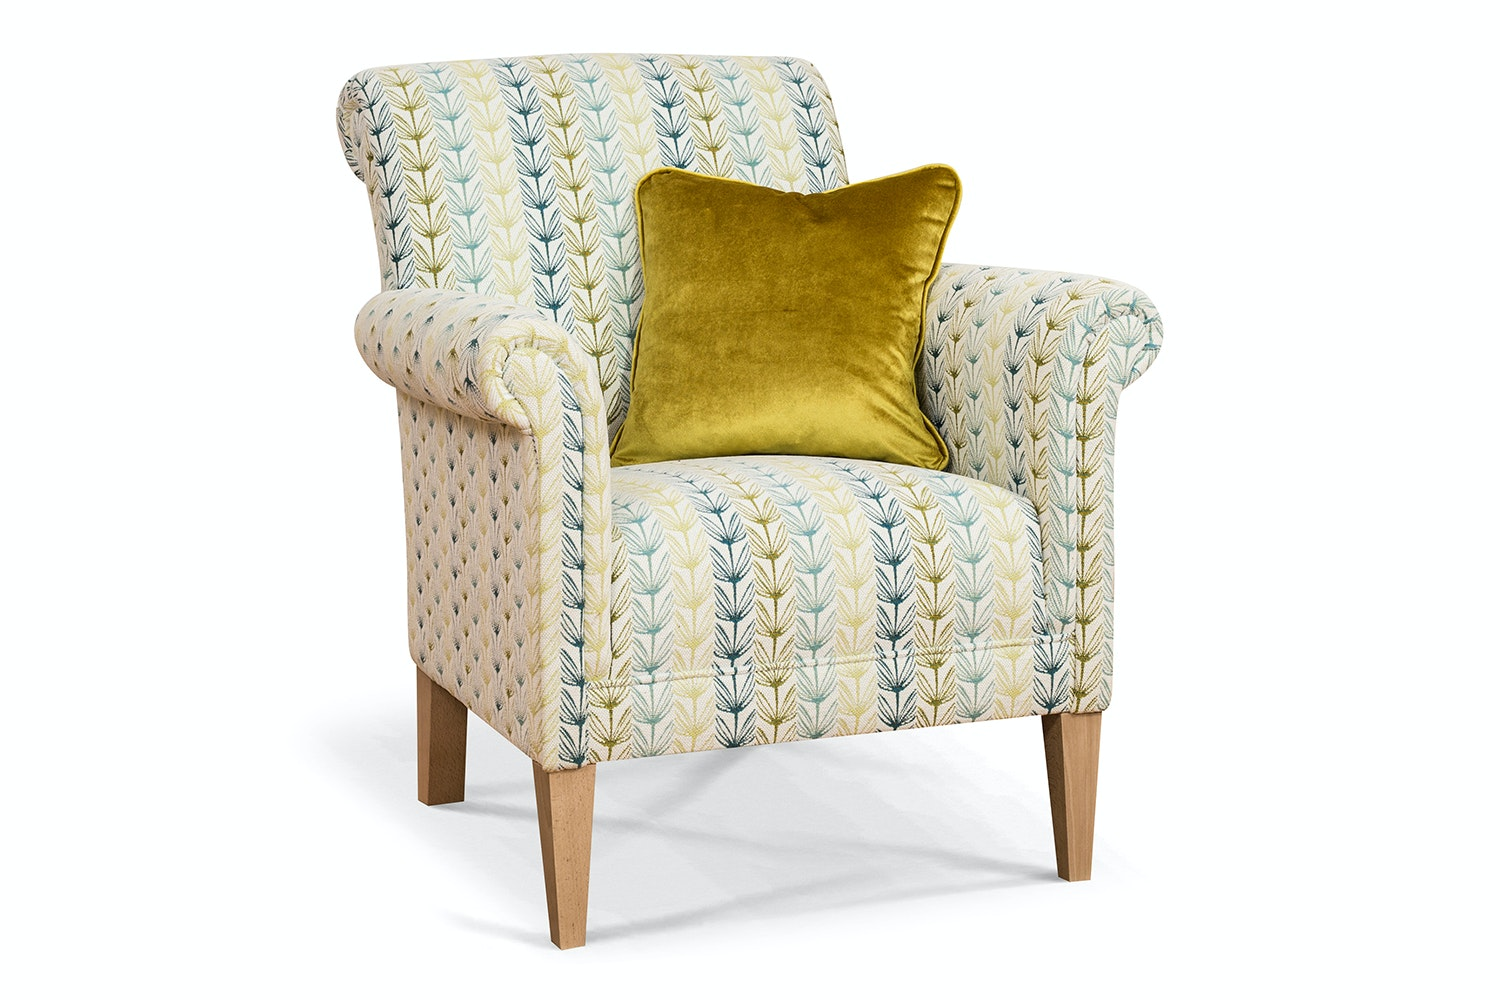 Preston Bedroom Chair | Retro Floral Teal Scatter